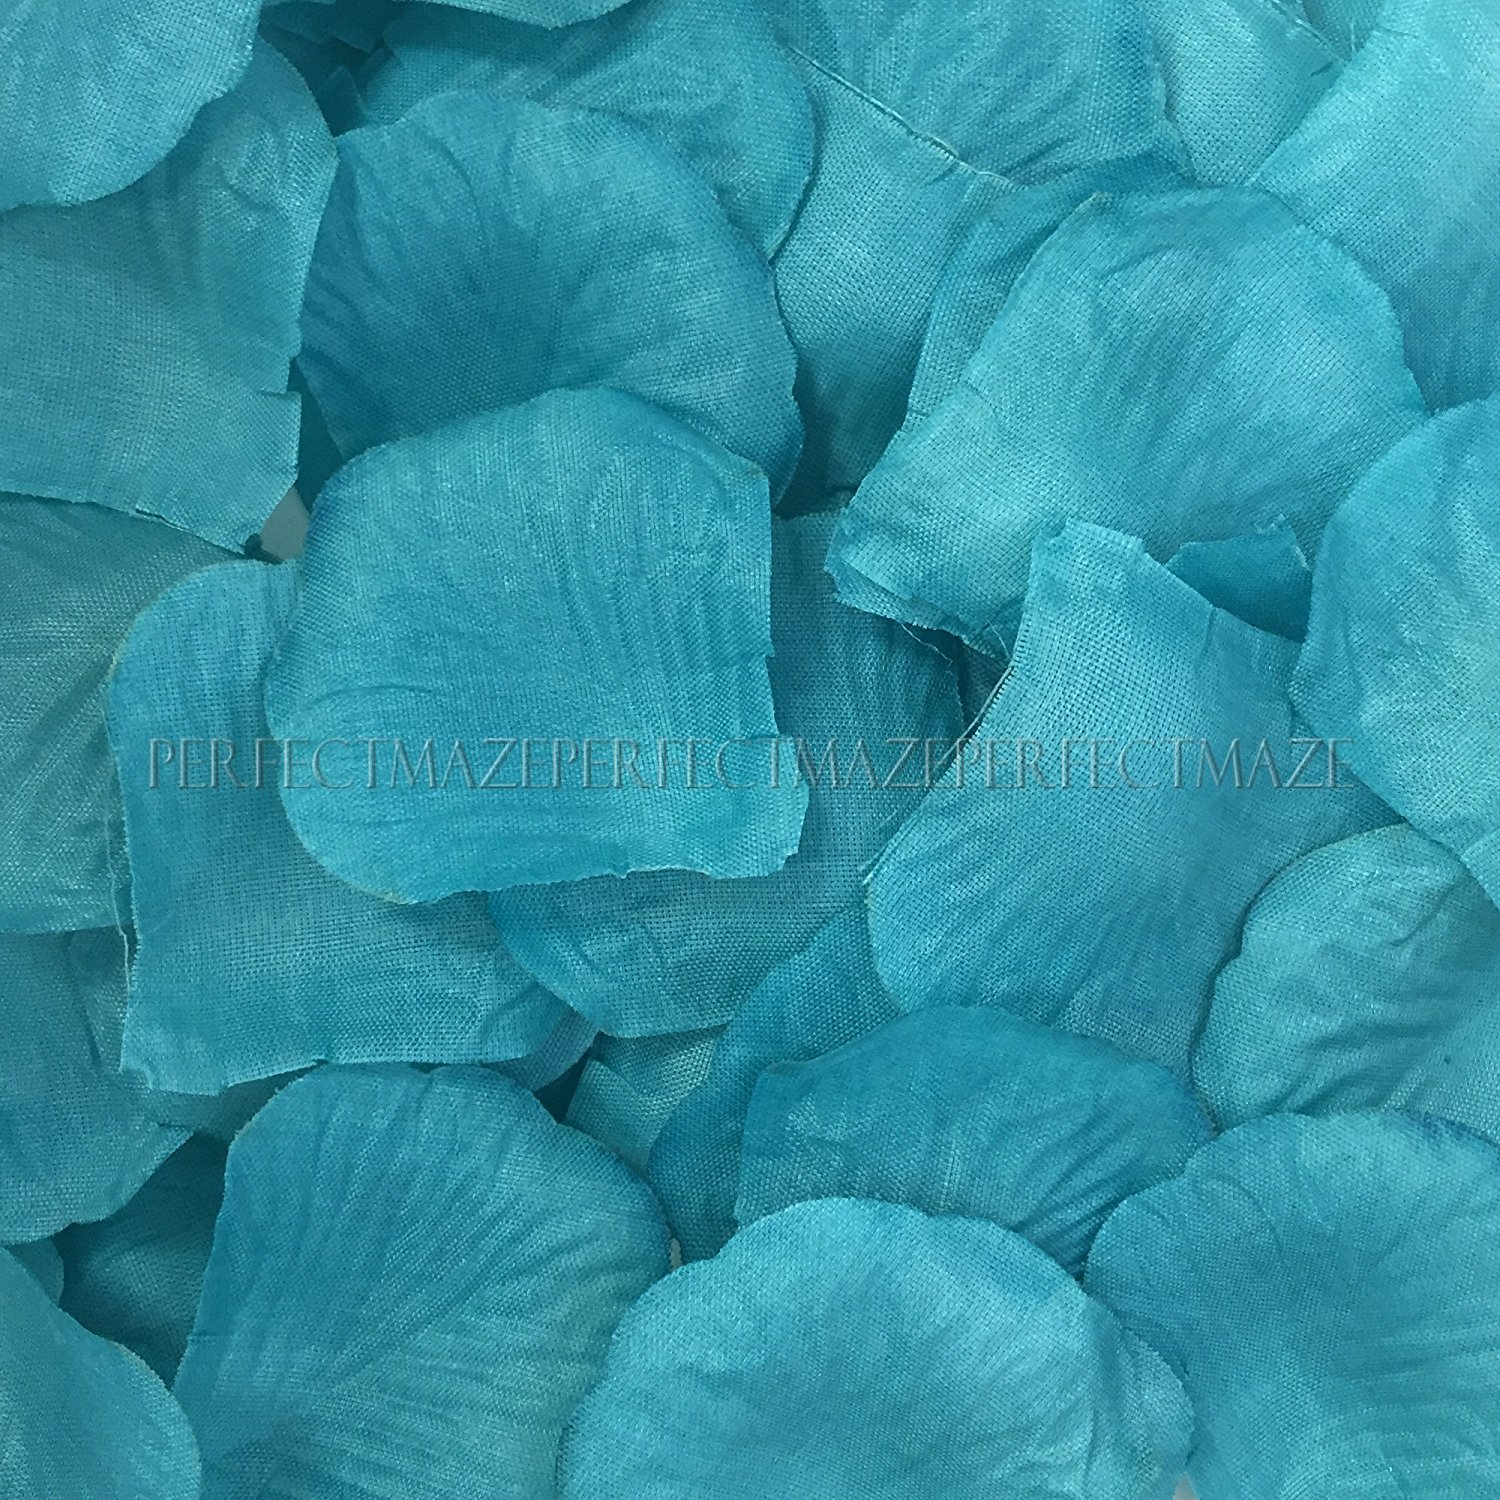 Cheap teal flower petals find teal flower petals deals on line at get quotations perfectmaze silk rose petals bouquet artificial flower wedding party aisle decor flower girl table scatters confetti izmirmasajfo